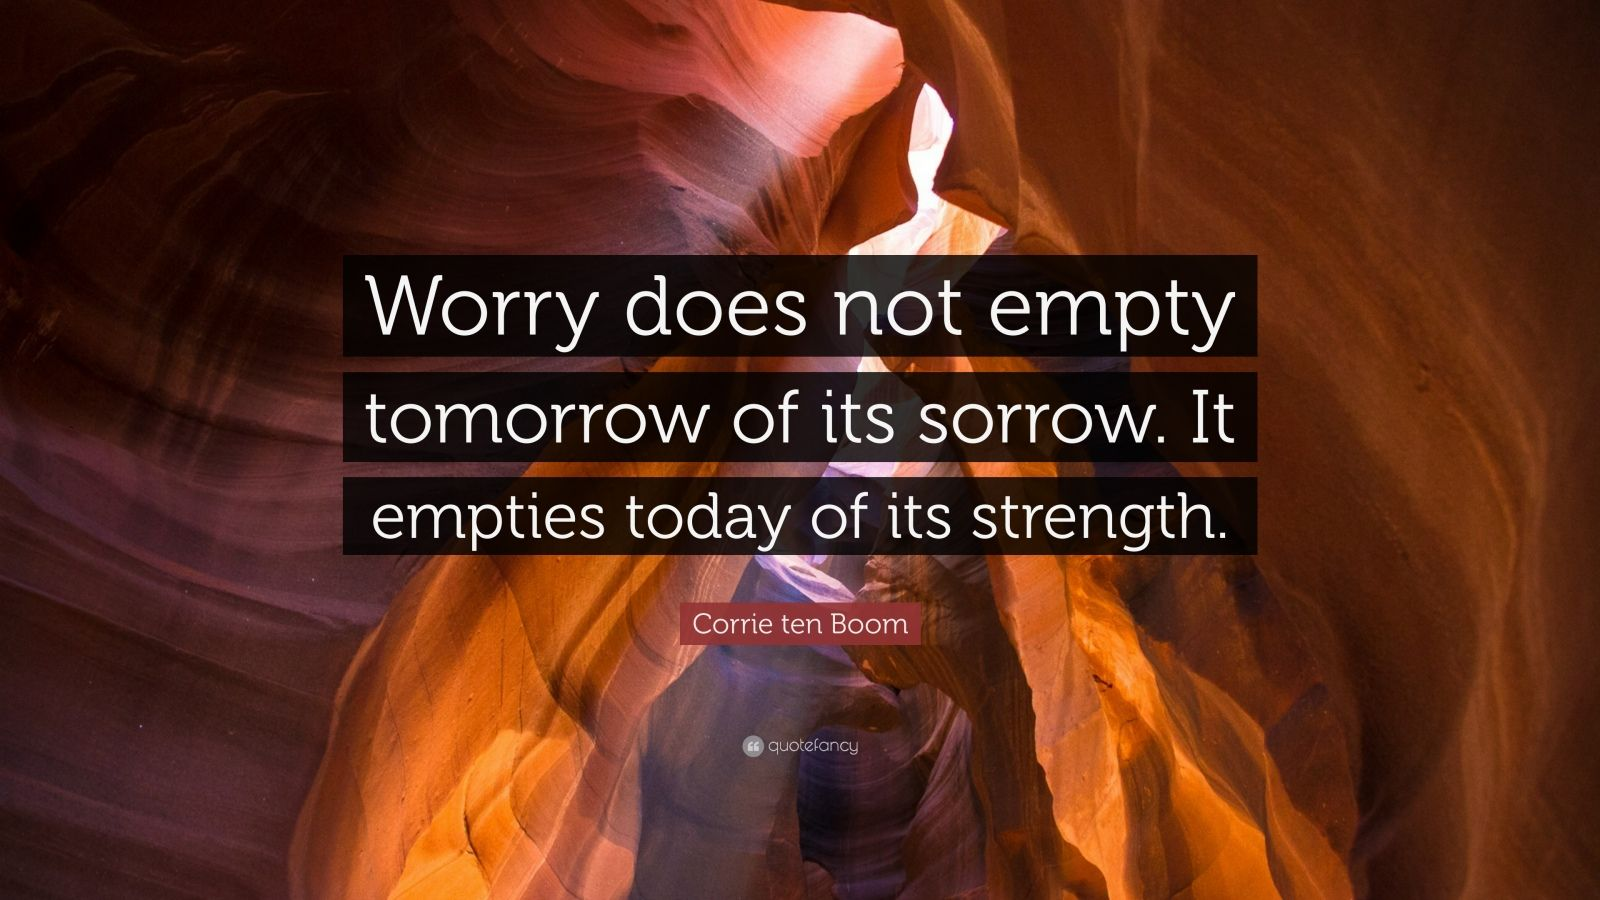 Zen Quote Wallpaper Corrie Ten Boom Quote Worry Does Not Empty Tomorrow Of